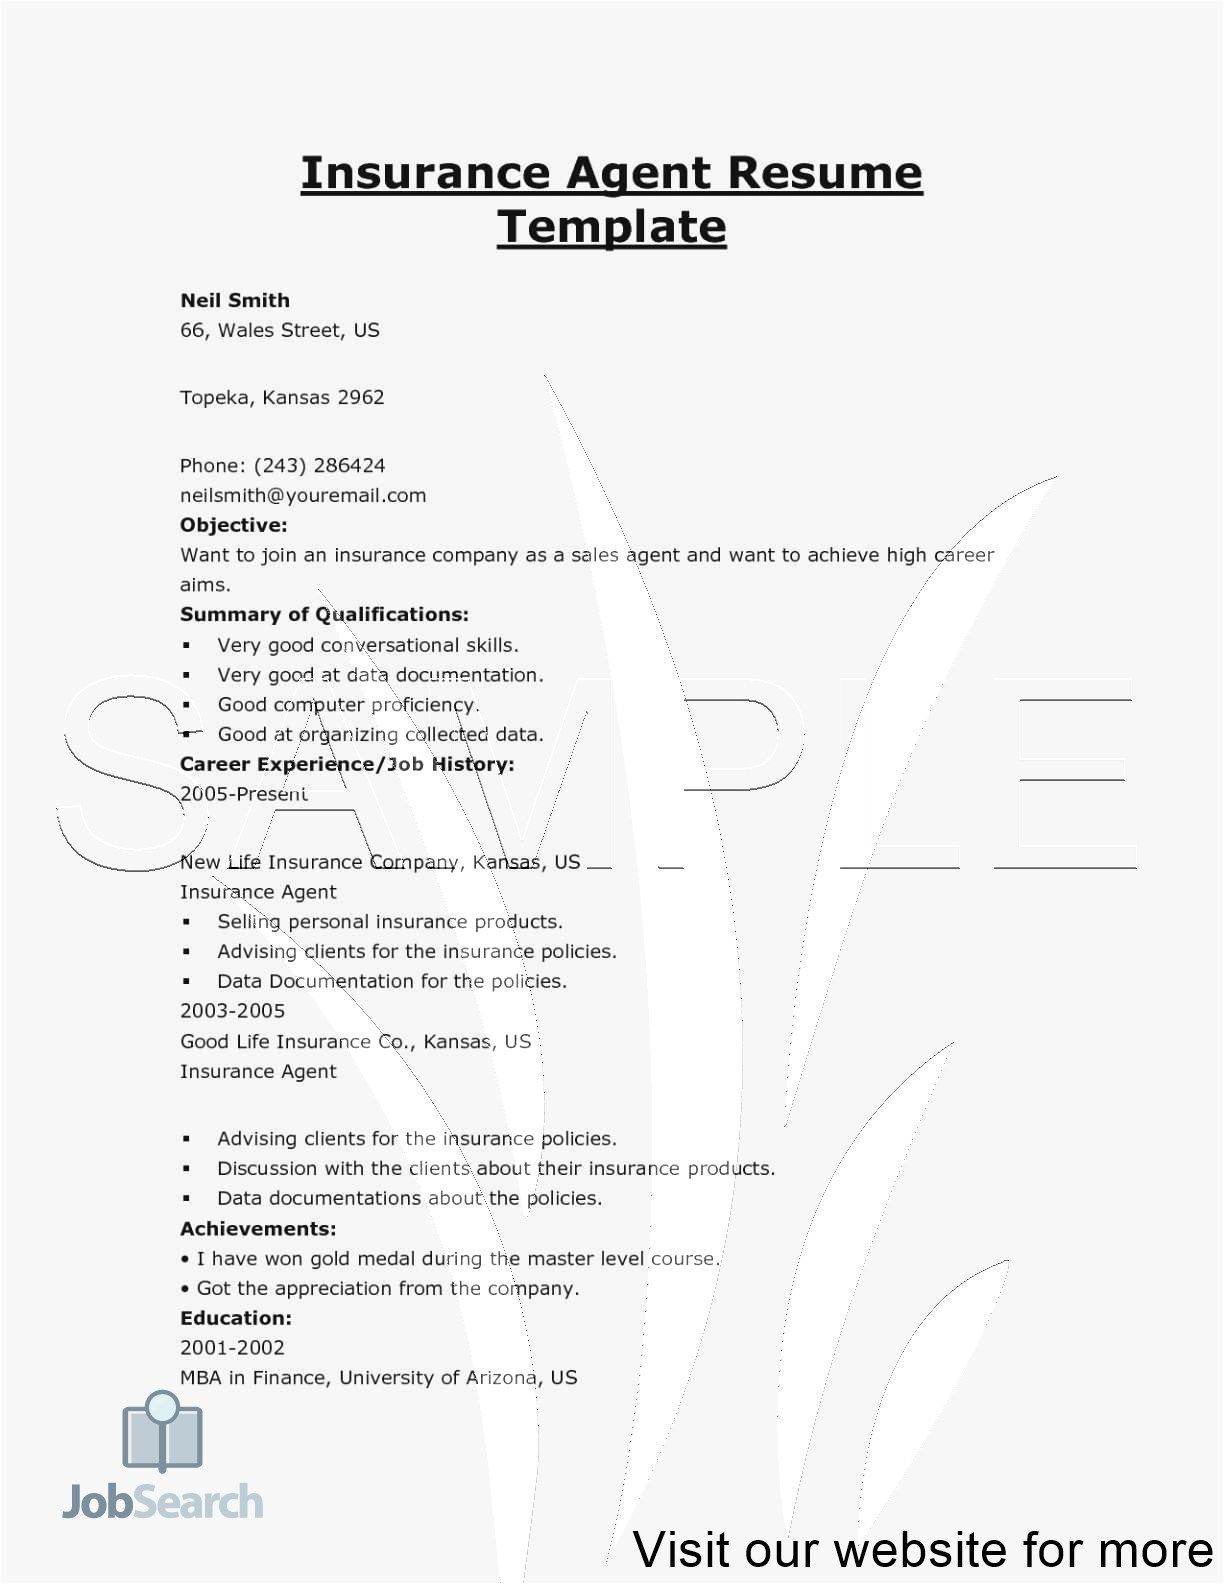 Insurance Agent Resume Examples Sales Resume Sales Resume Examples